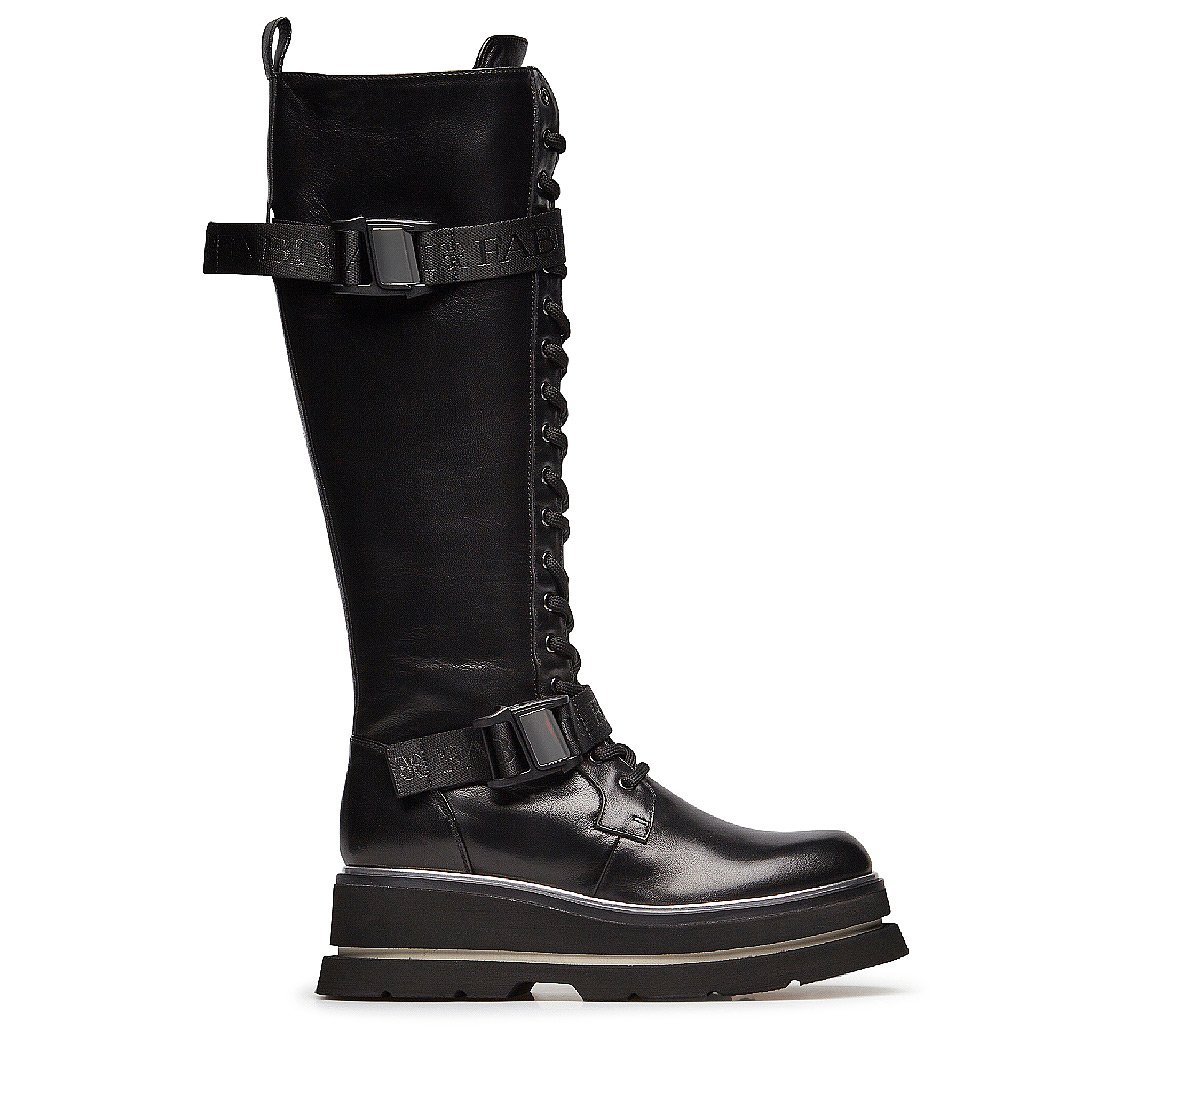 Fine nappa leather boots